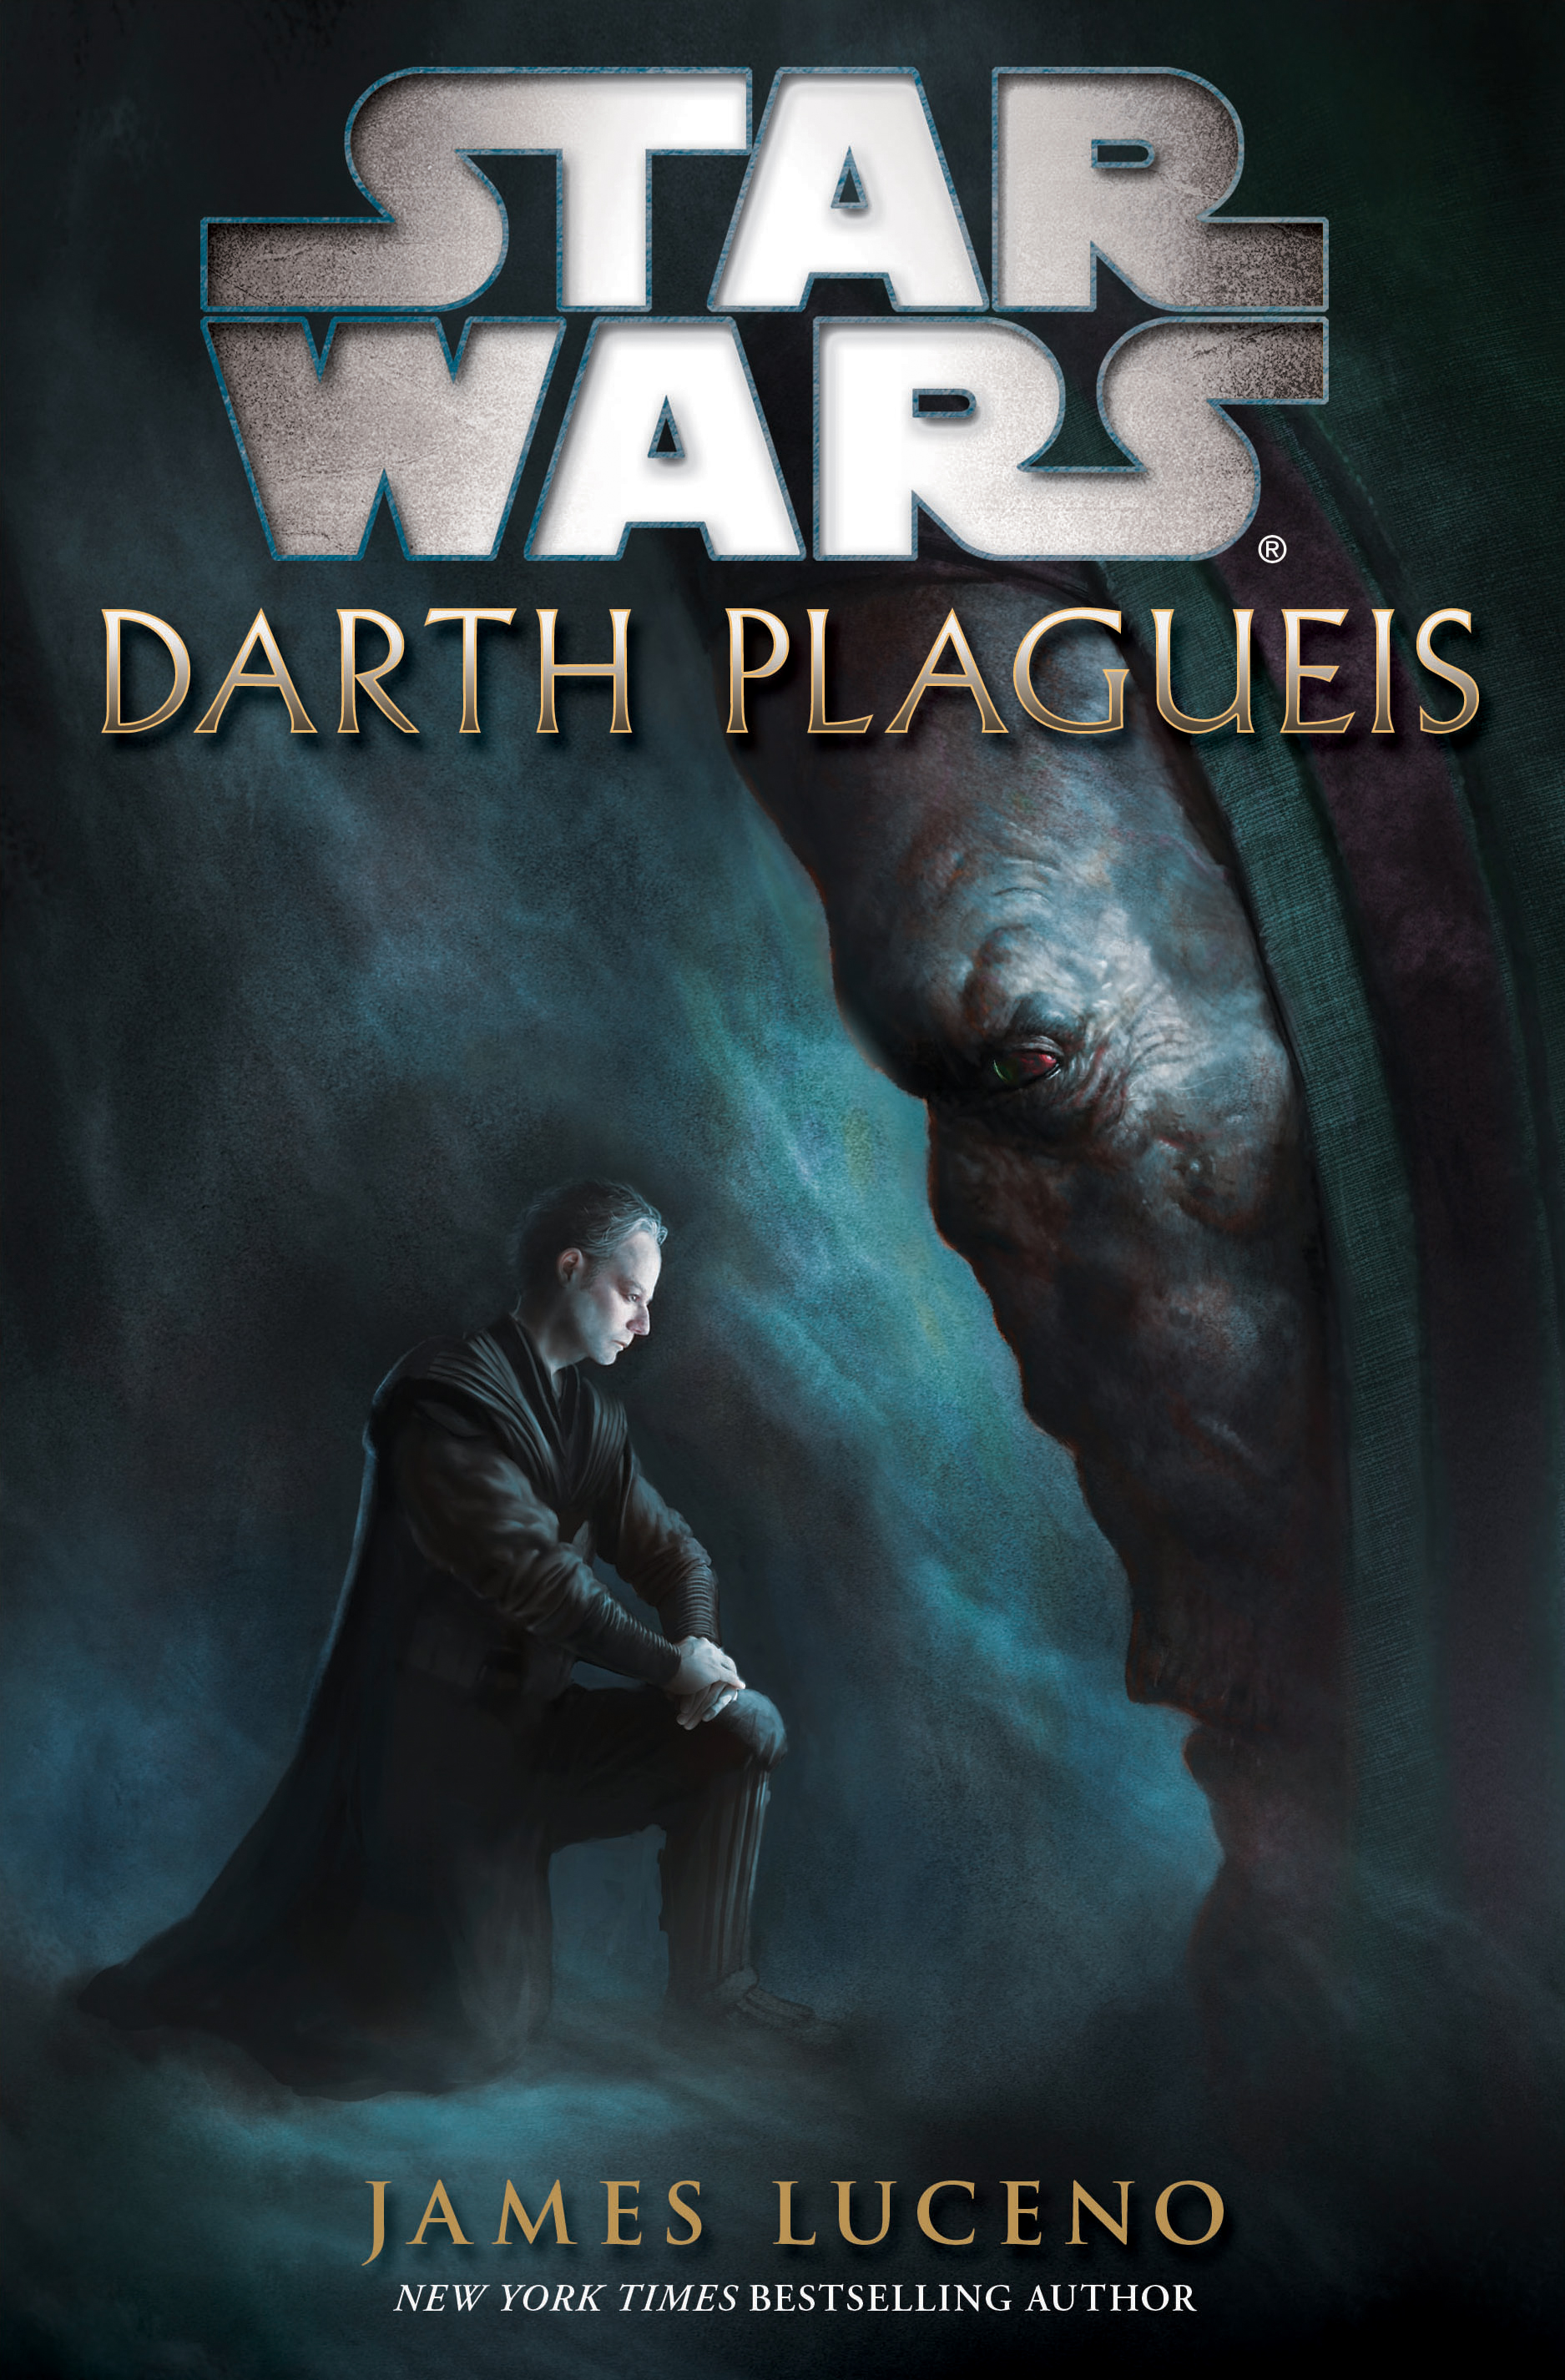 Darth Plagueis novel